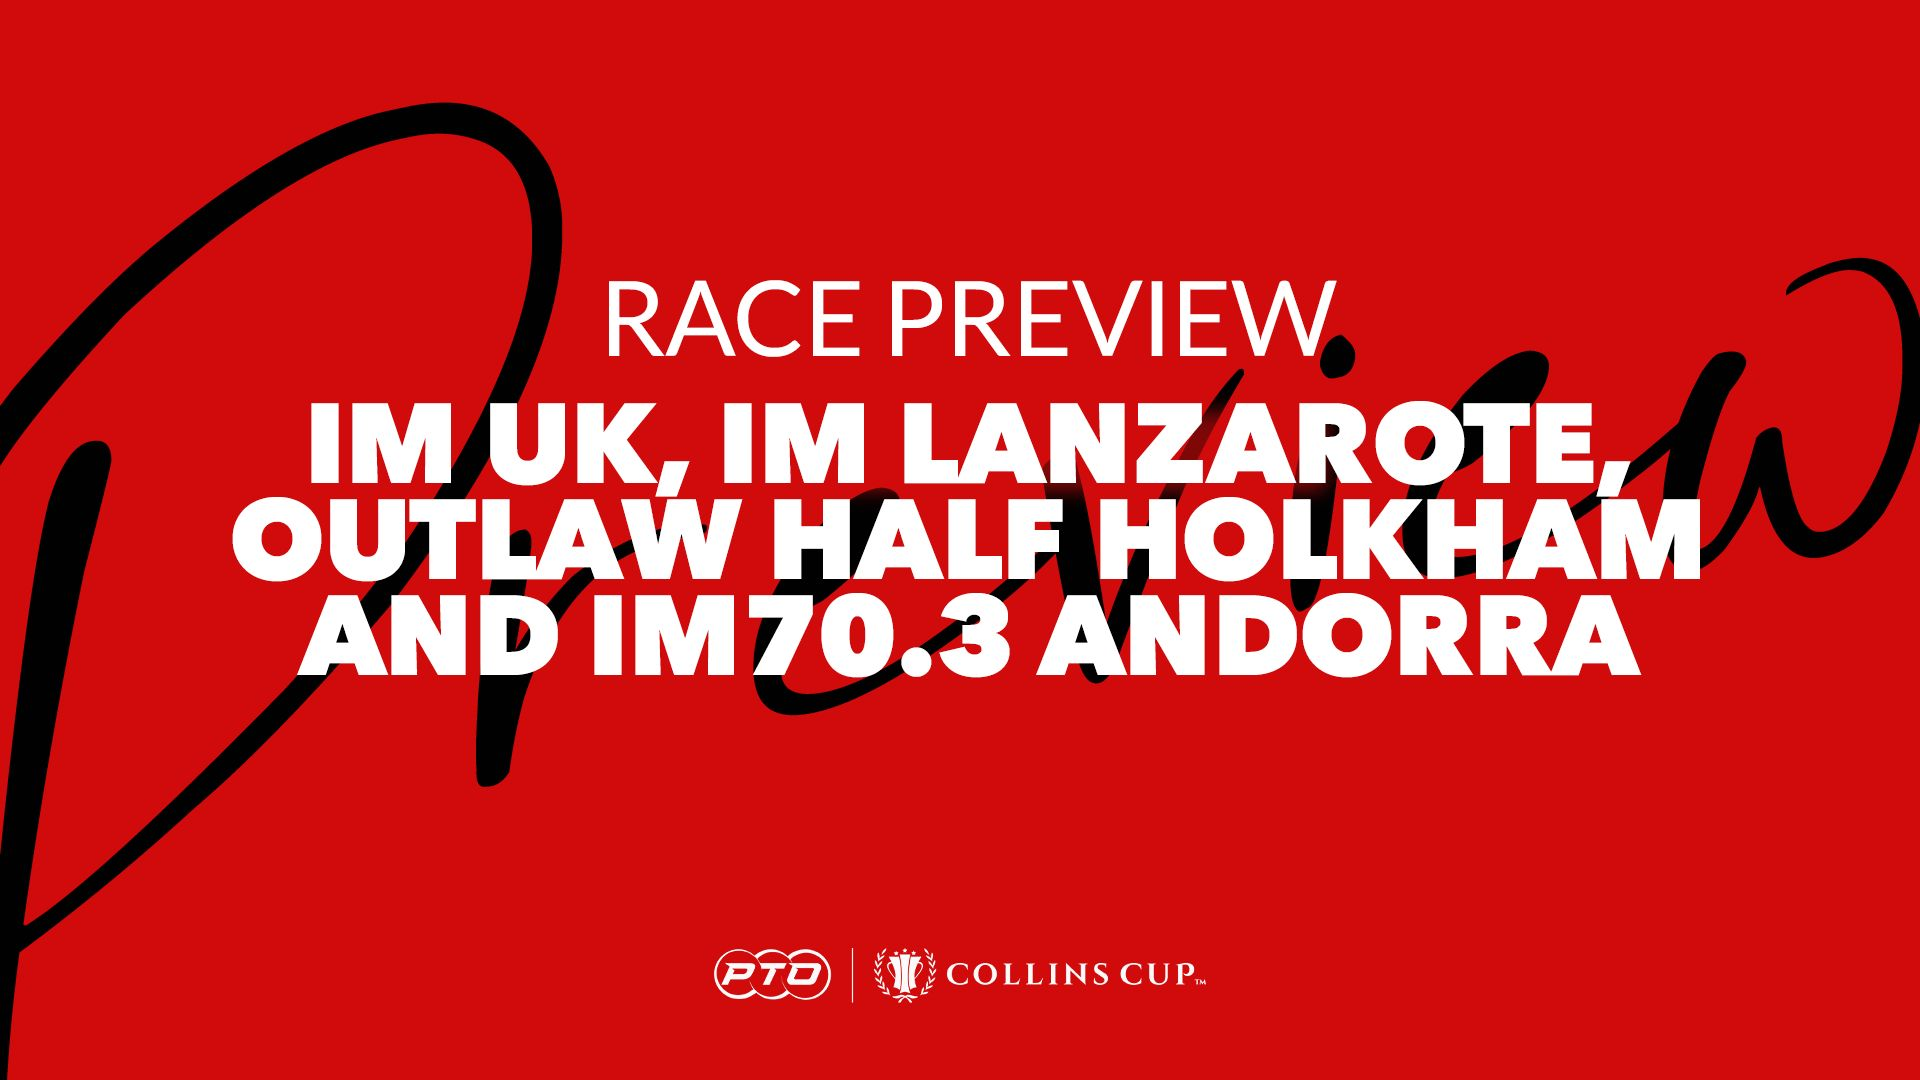 Weekend Preview: IM UK, IM Lanzarote, Outlaw Half Holkham and 70.3 Andorra